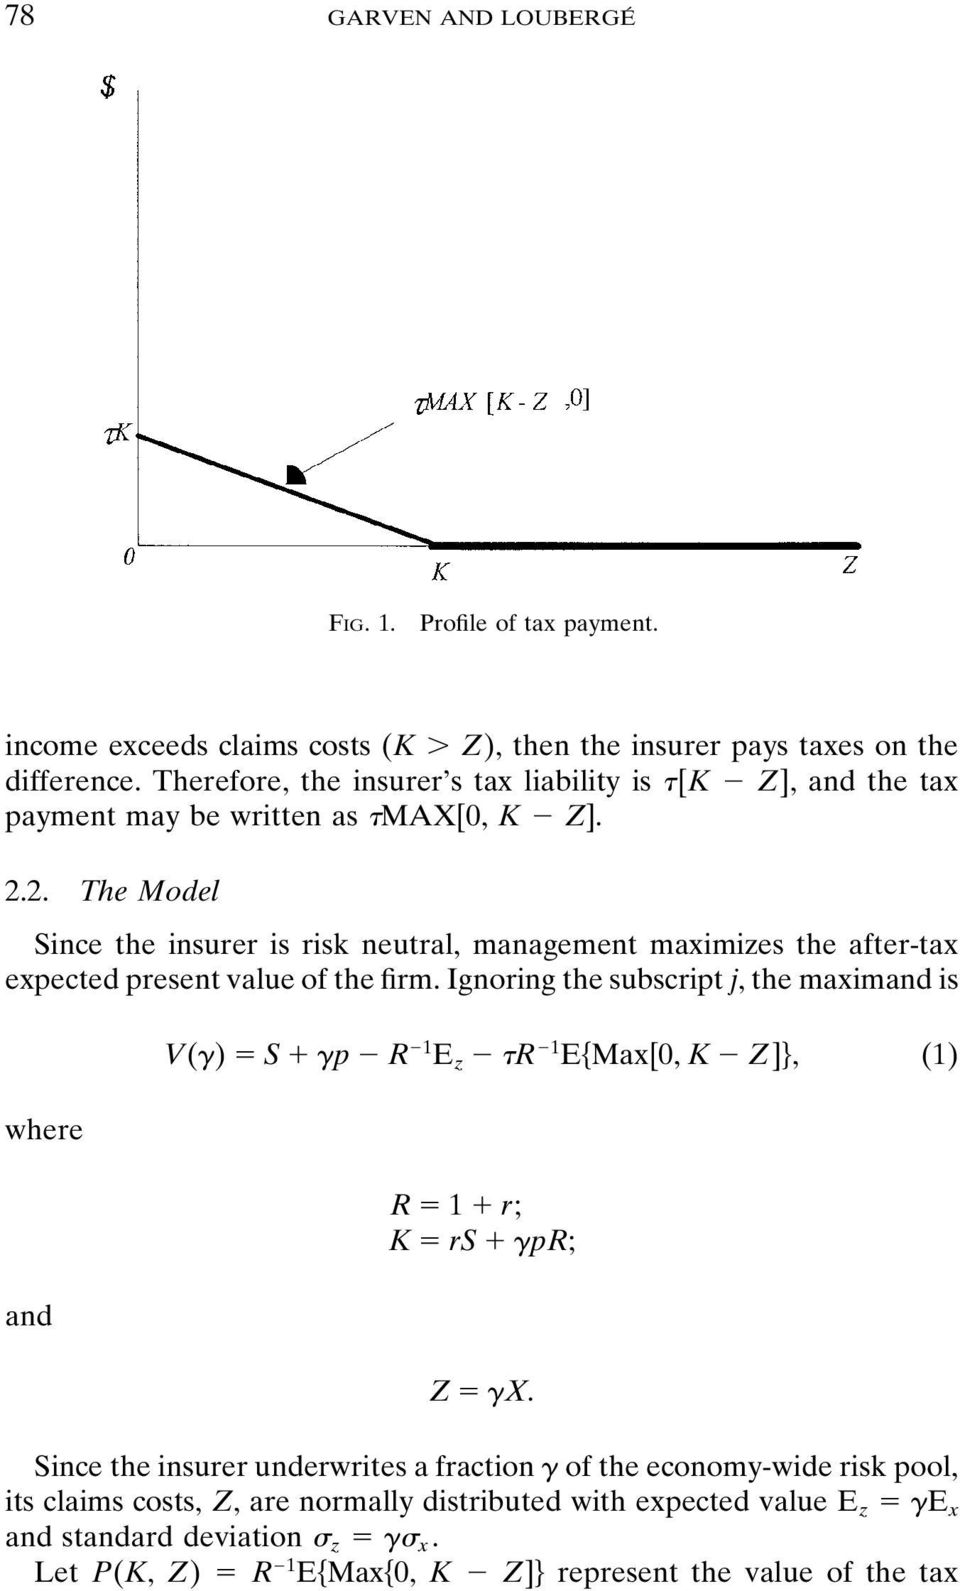 2. The Model Since the insurer is risk neutral, management maximizes the after-tax expected present value of the firm.